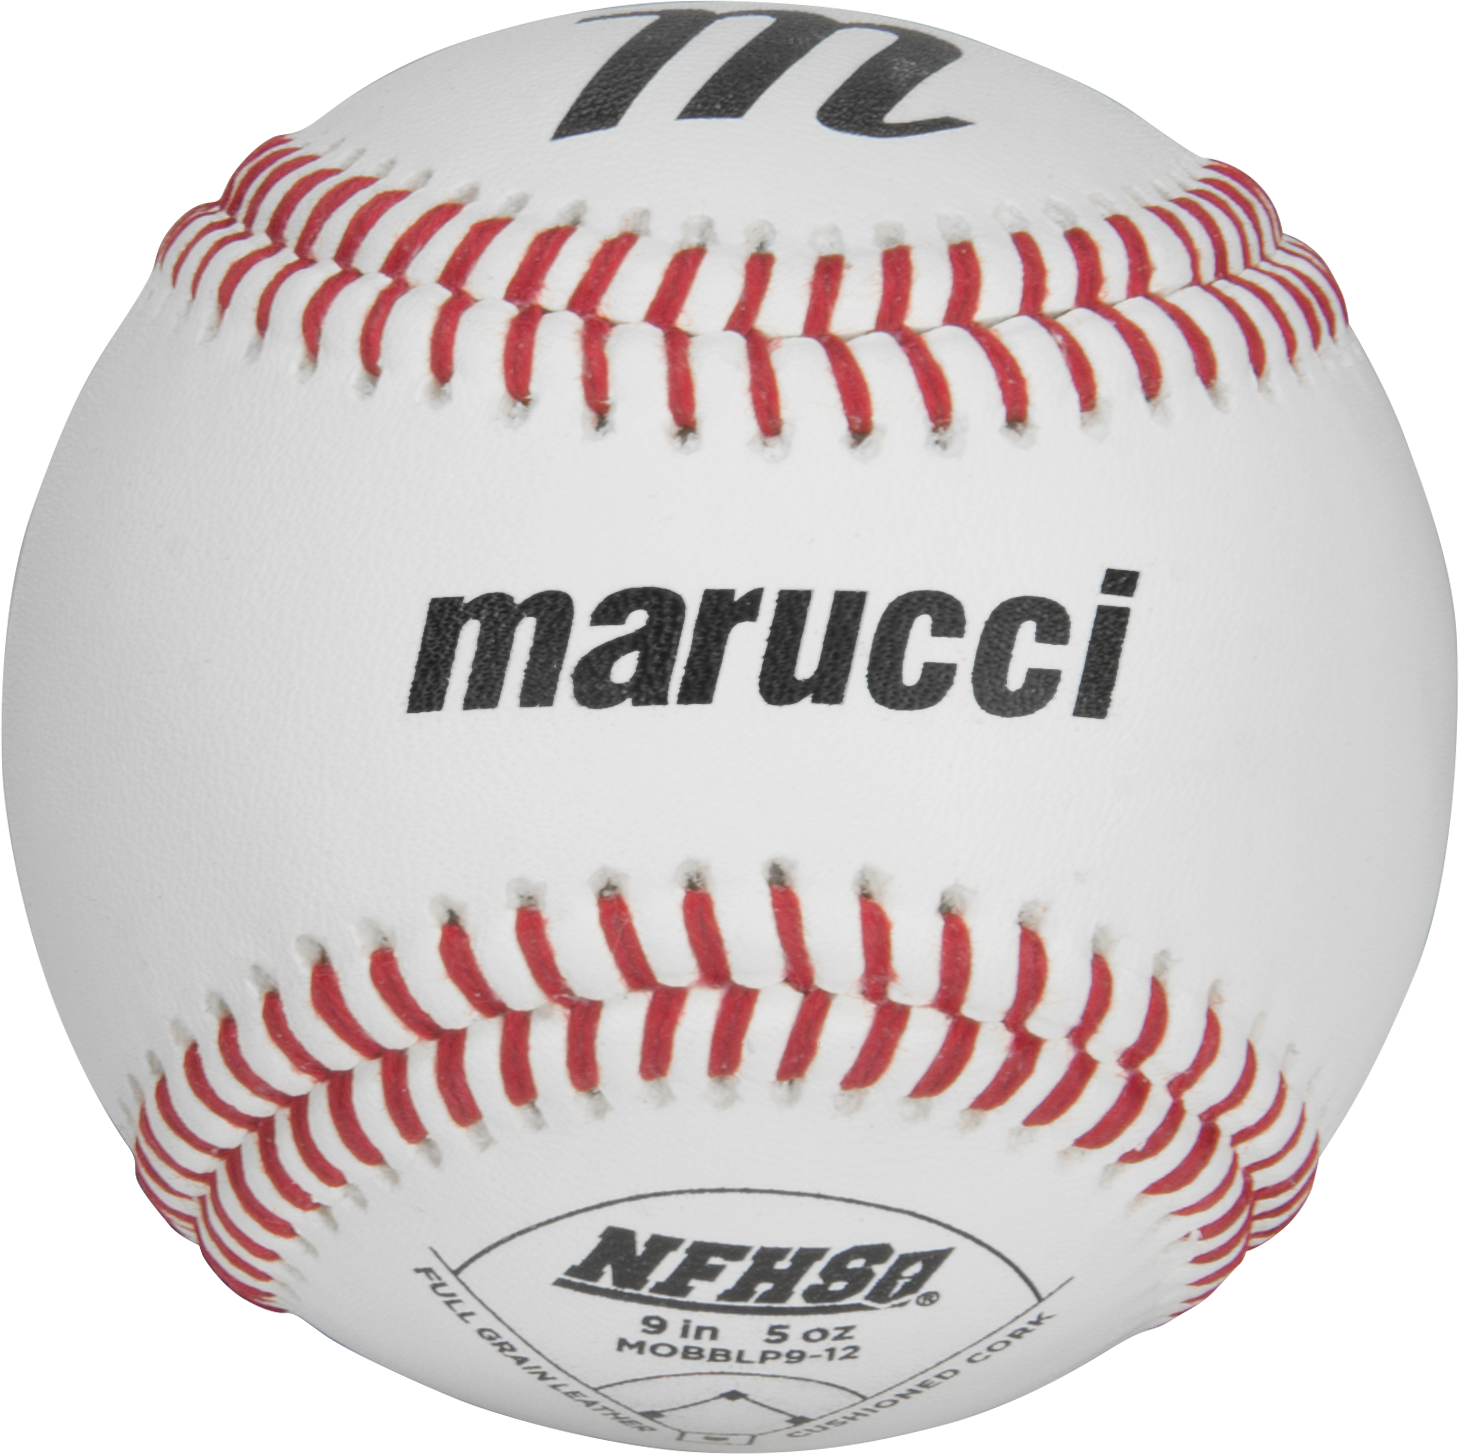 marucci-nfhs-mobblr9-12-baseballs-1-dozen MOBBLR9-12  849817088524 Consistency and craftsmanship Commitment to quality and understanding of players Designed